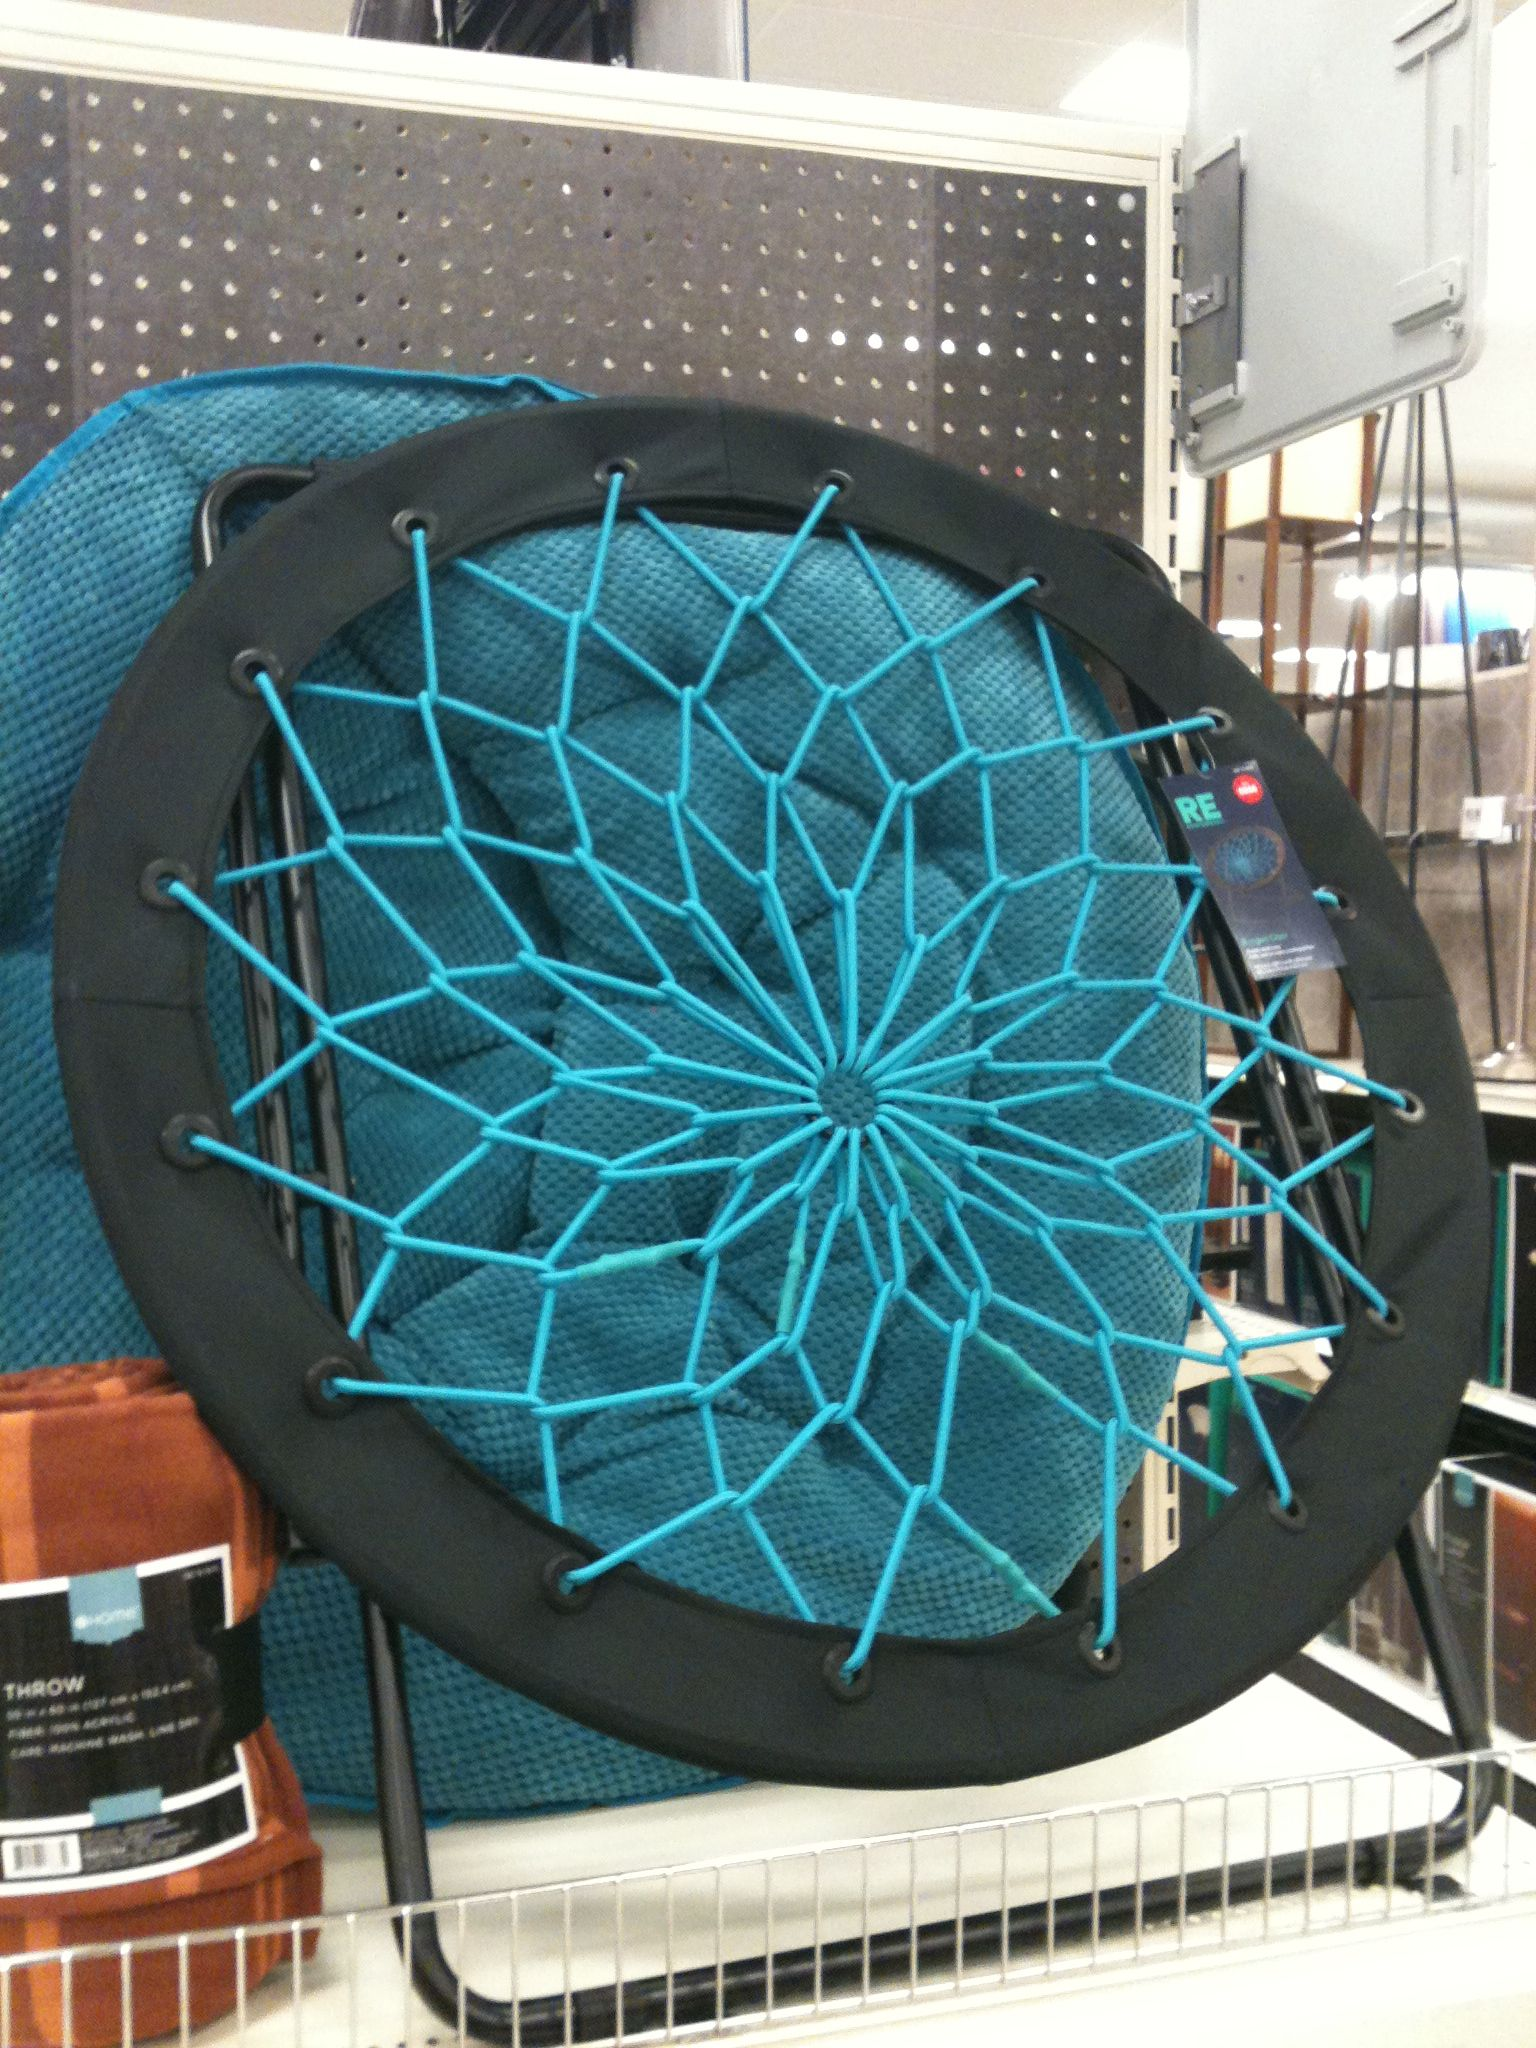 Target Bedroom Chairs Cool Chairs At Target Round Bungee Chair In Teal At Target